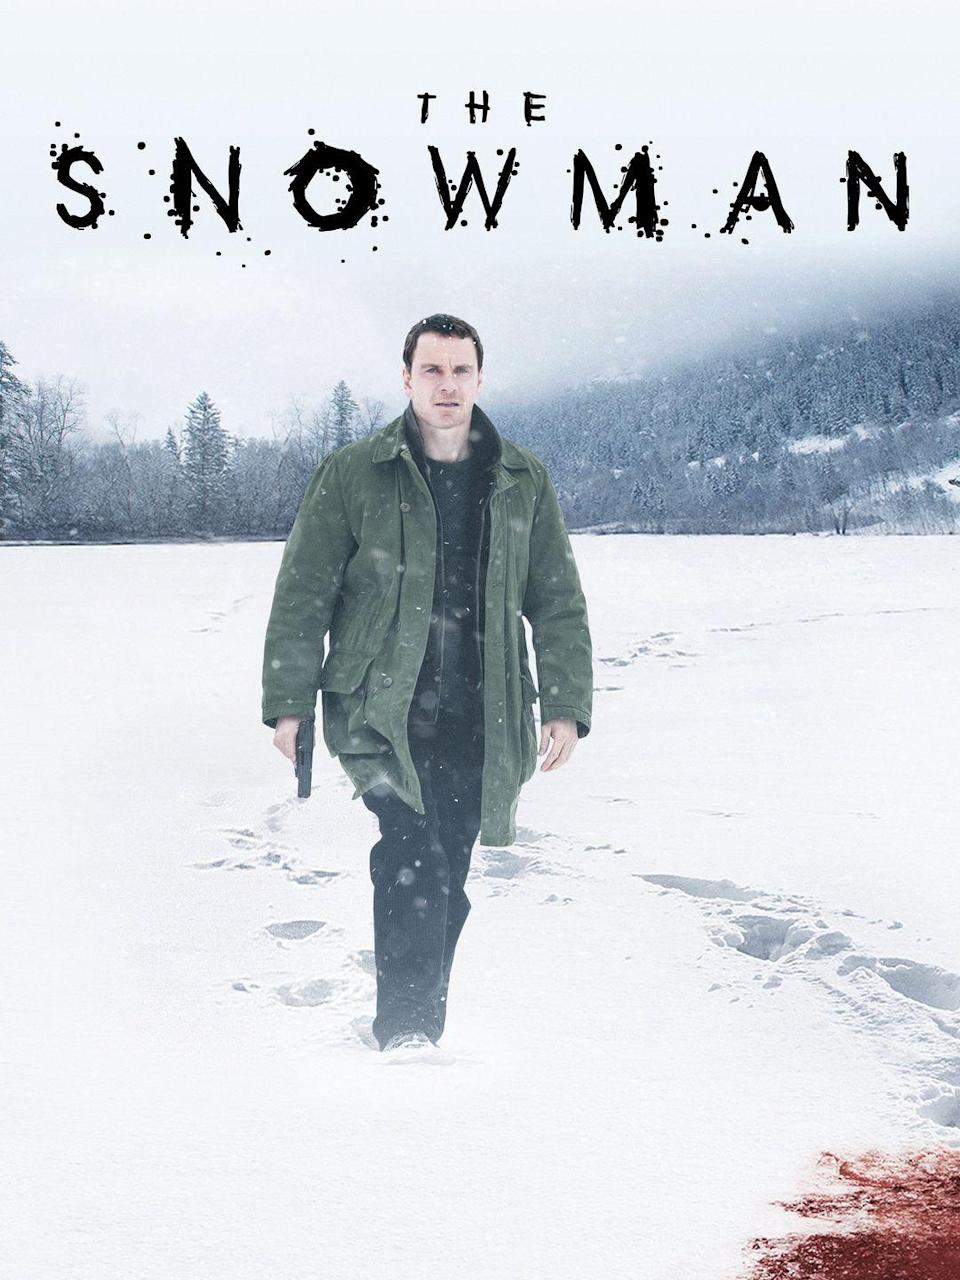 """<p>A detective fears a serial killer is on the loose in this movie adaptation of the <em>New York Times</em> best-selling novels by Jo Nesbø. </p><p><a class=""""link rapid-noclick-resp"""" href=""""https://www.amazon.com/Snowman-Michael-Fassbender/dp/B076HBCJ58/?tag=syn-yahoo-20&ascsubtag=%5Bartid%7C10050.g.25336174%5Bsrc%7Cyahoo-us"""" rel=""""nofollow noopener"""" target=""""_blank"""" data-ylk=""""slk:WATCH NOW"""">WATCH NOW</a></p>"""